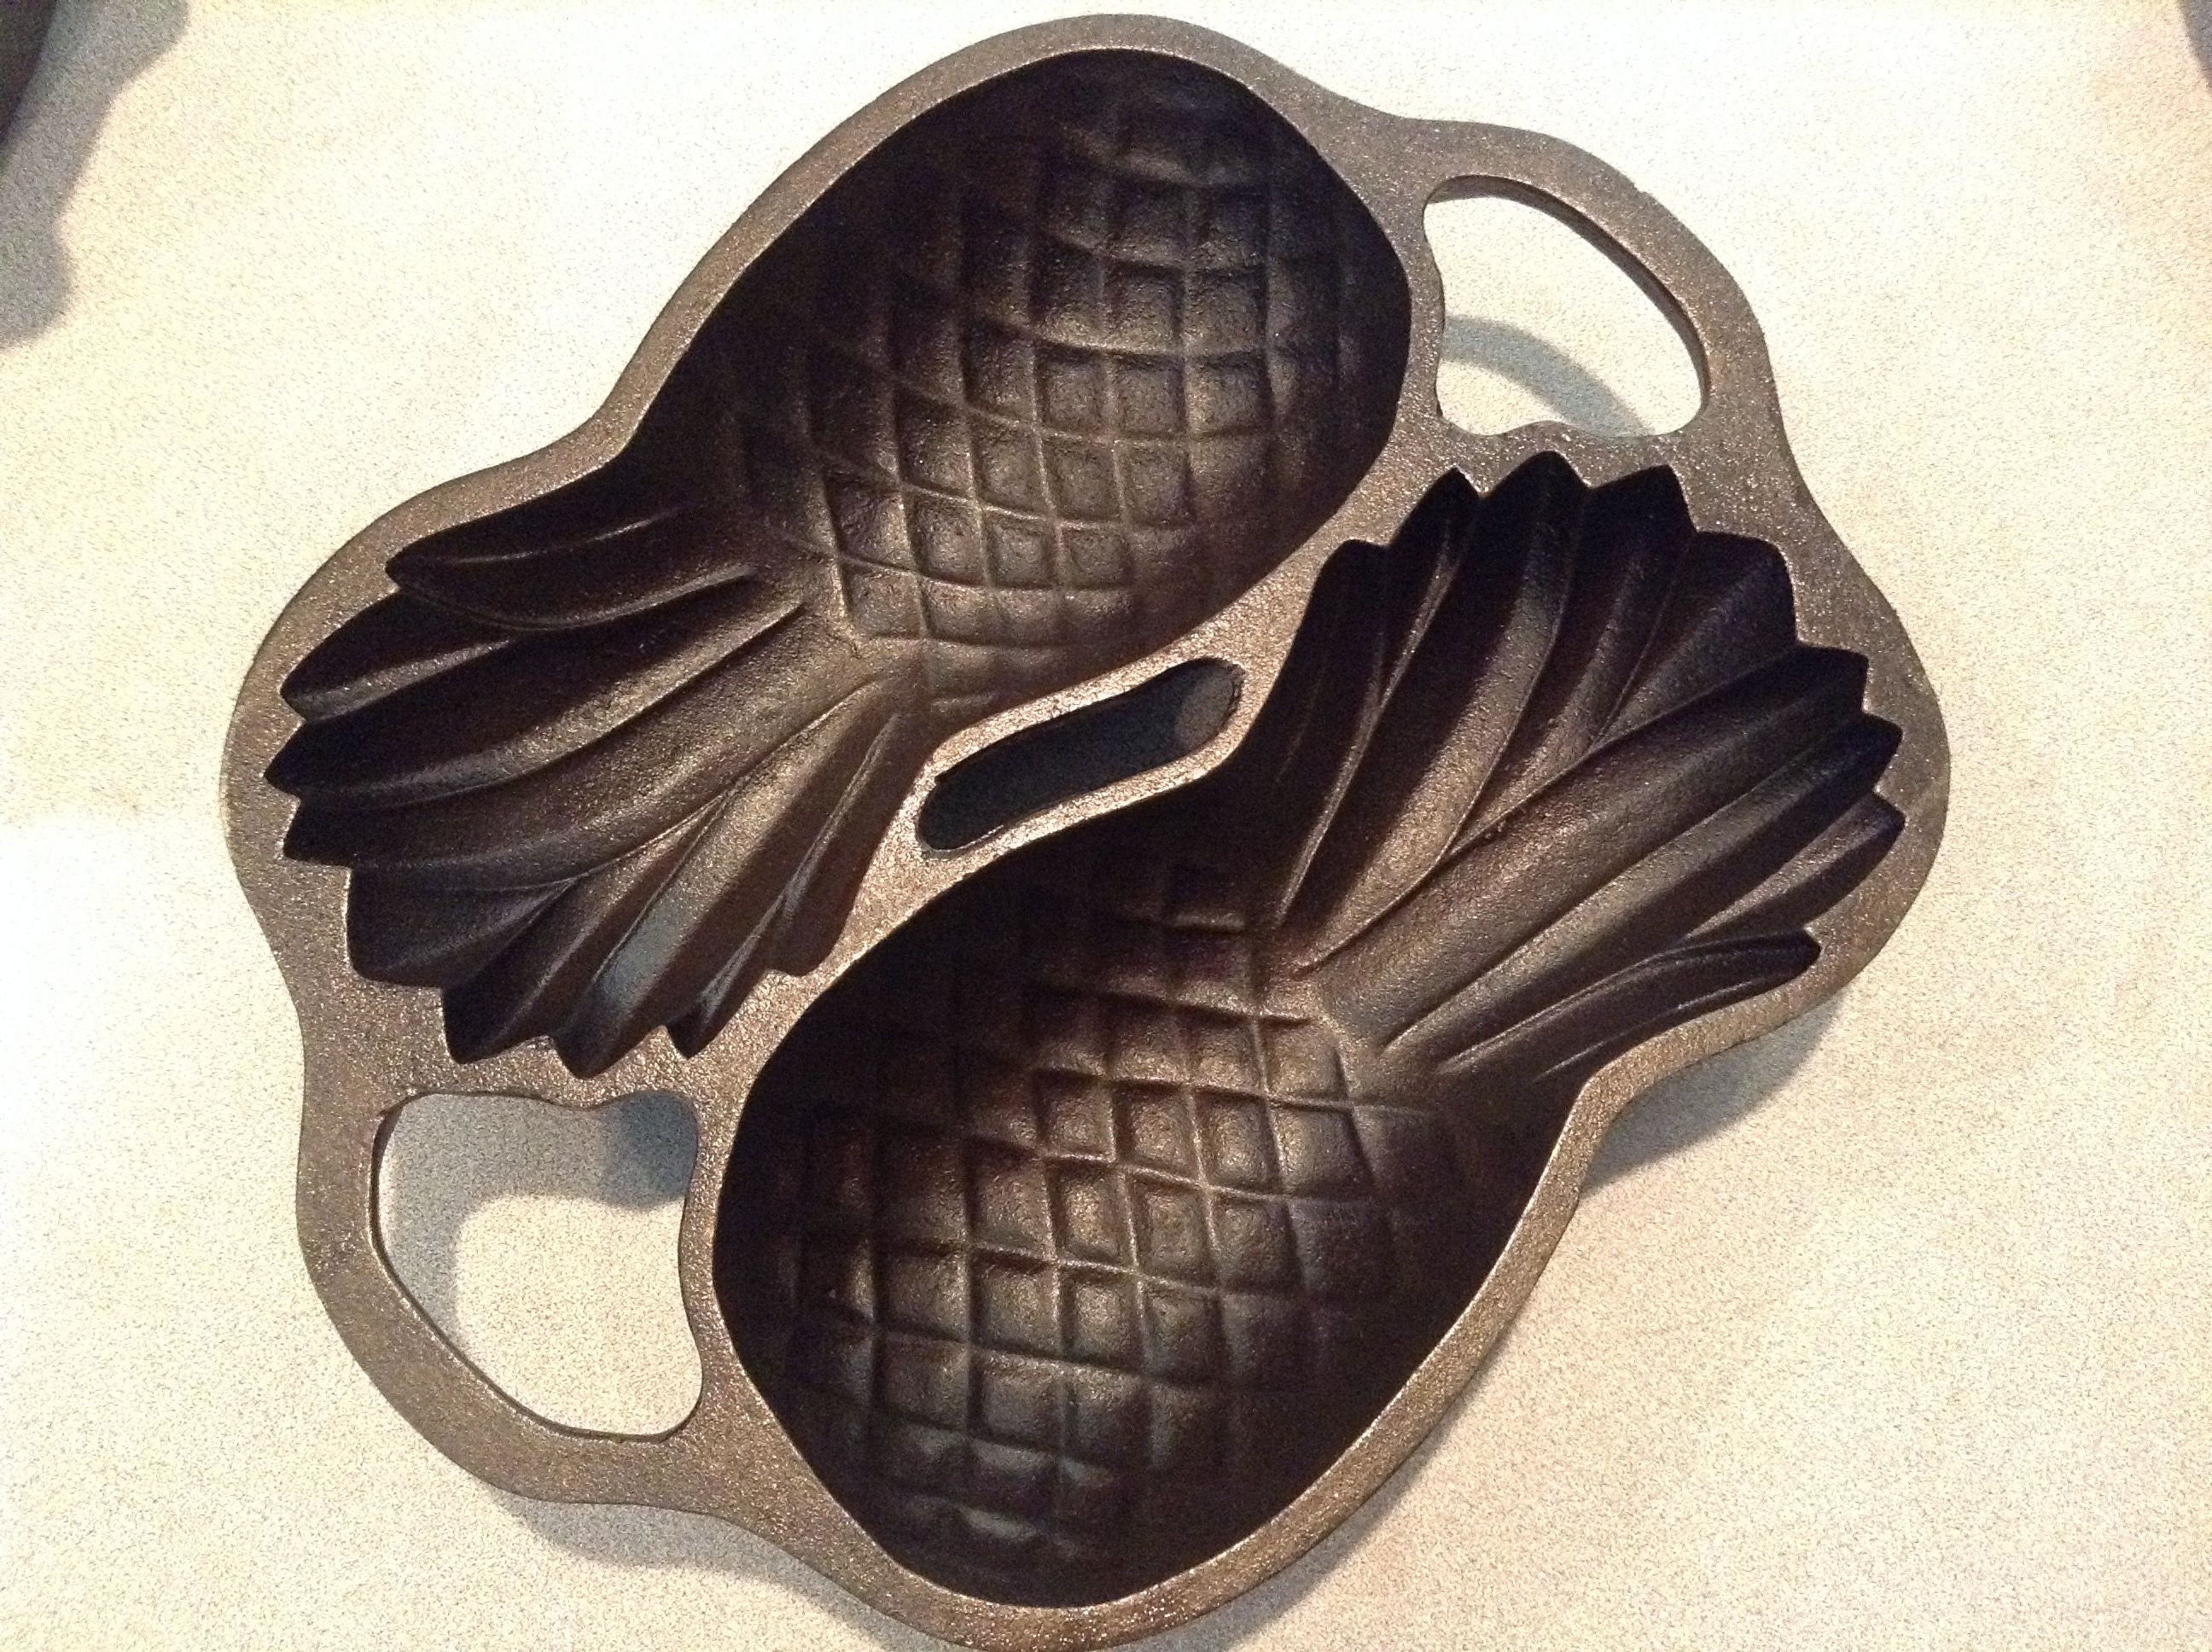 Pineapple Shape Cake Pan This Pan Has Been Discontinued